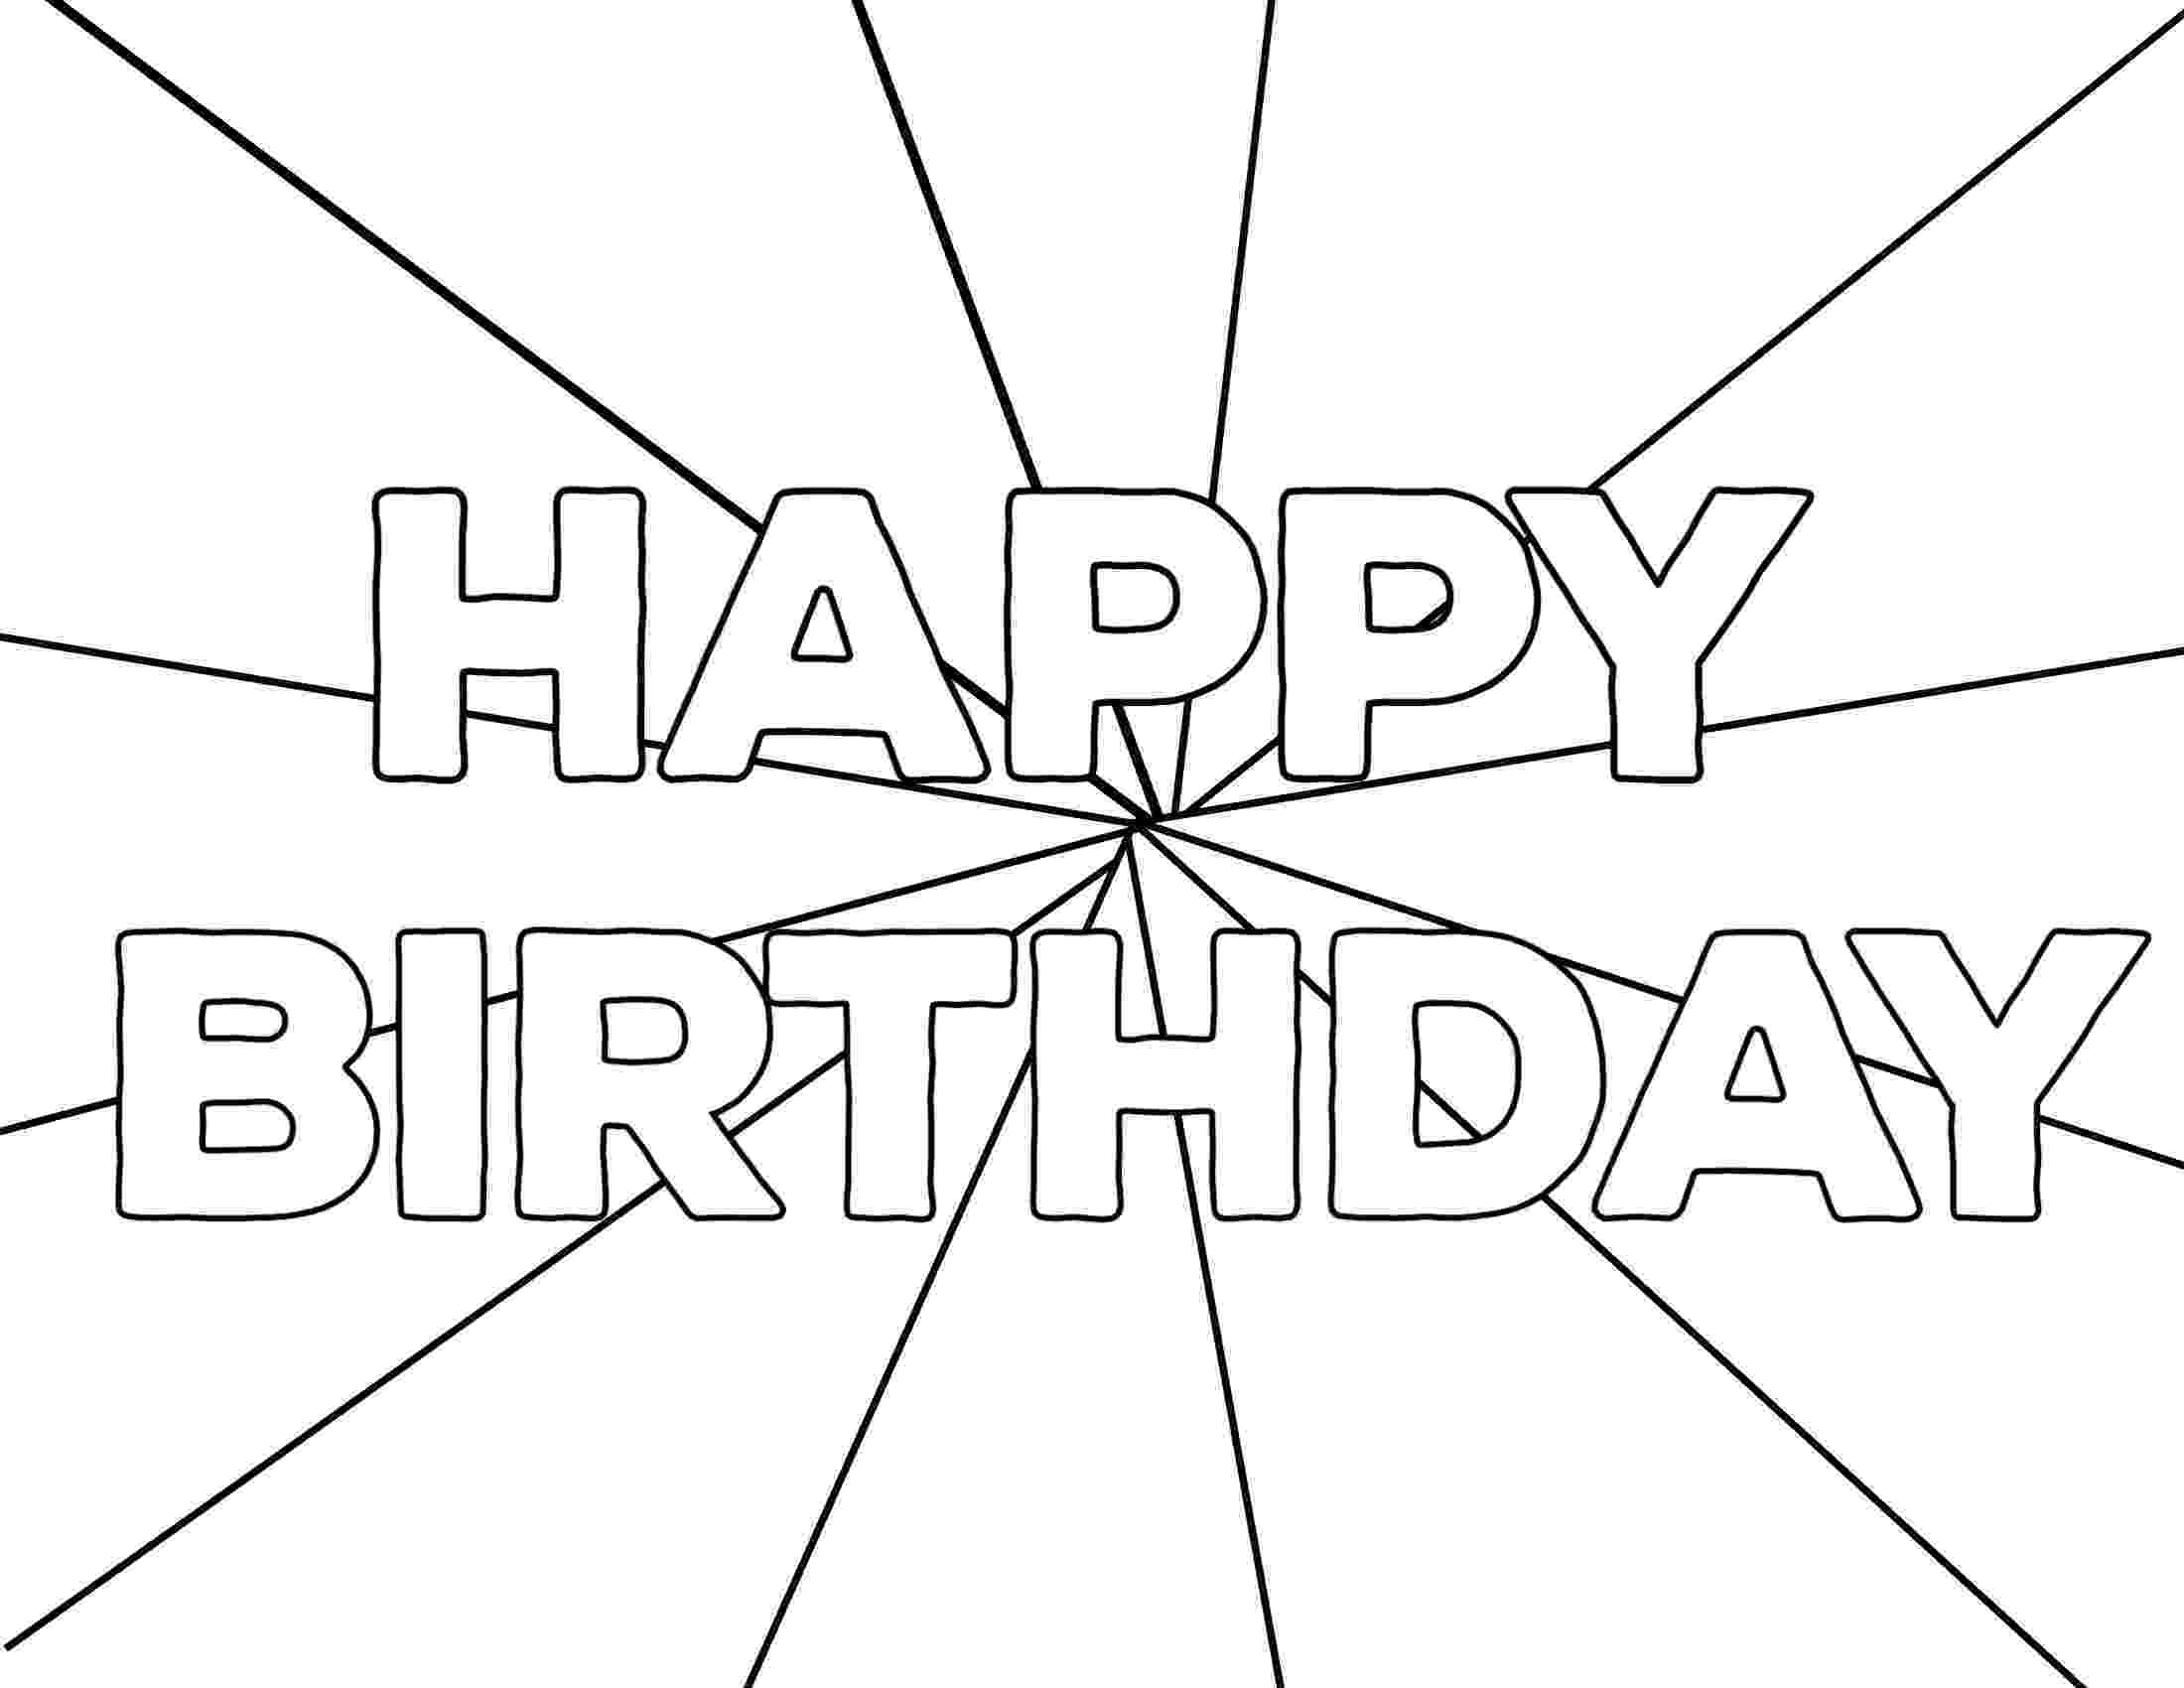 happy birthday coloring pages printable free printable happy birthday coloring pages paper trail pages birthday happy coloring printable